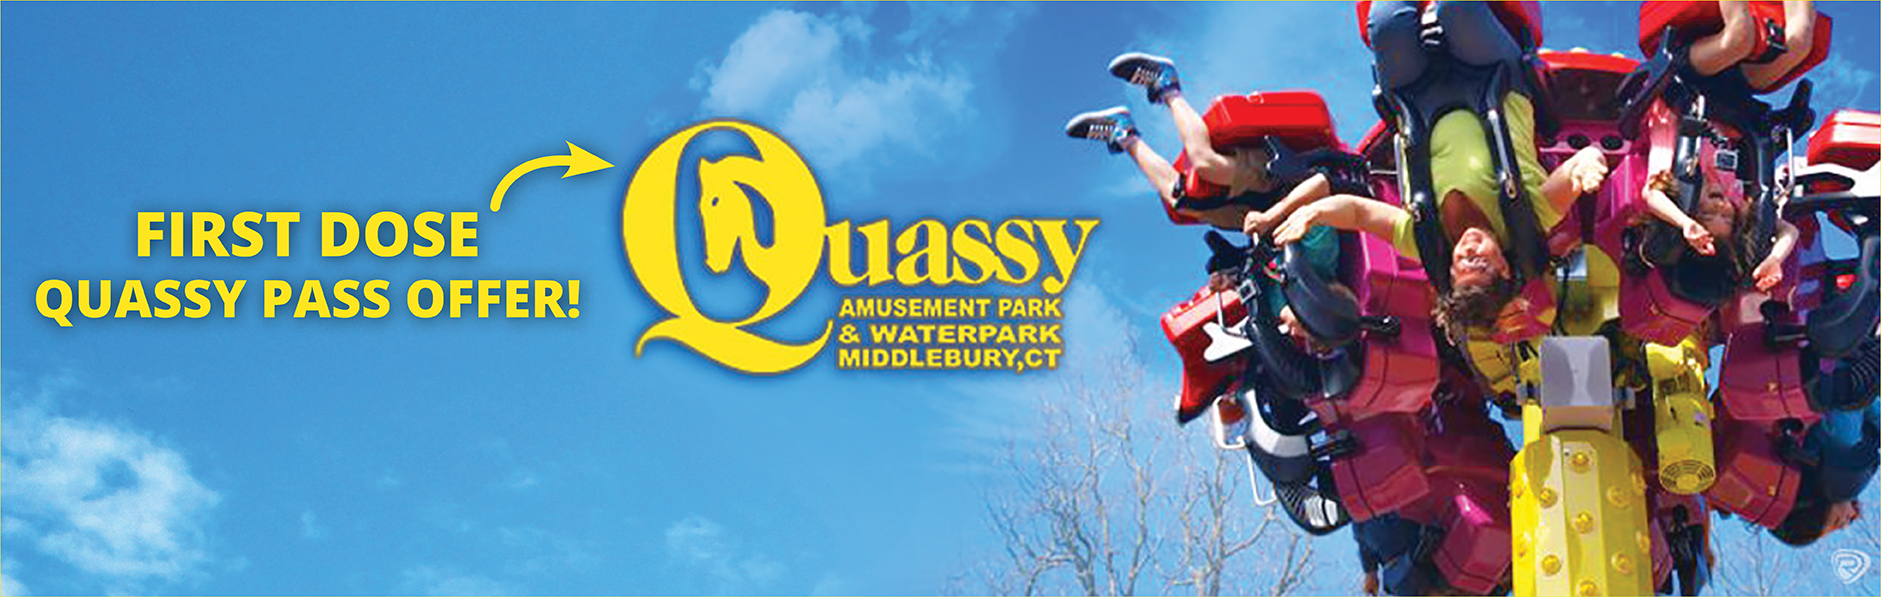 Quassy pass for first dose vaccinations